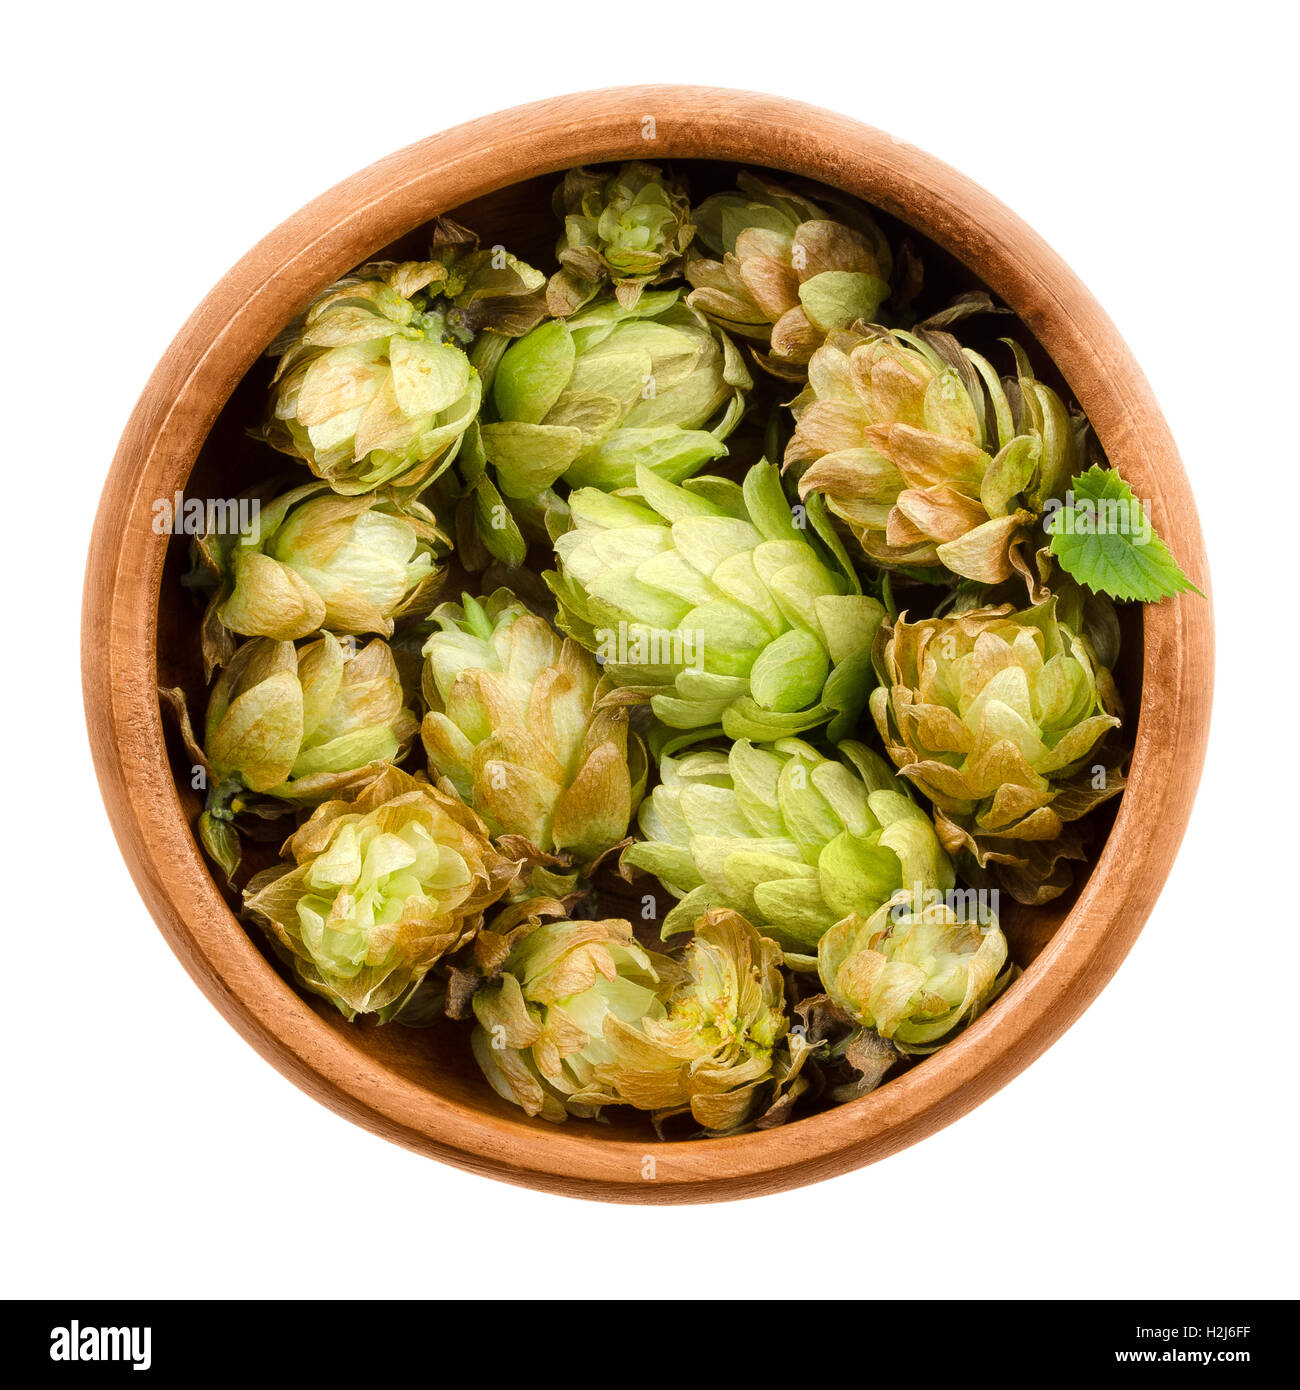 Hops in wooden bowl on white background. Half dried seed cones from the hop plant, Humulus lupulus. - Stock Image